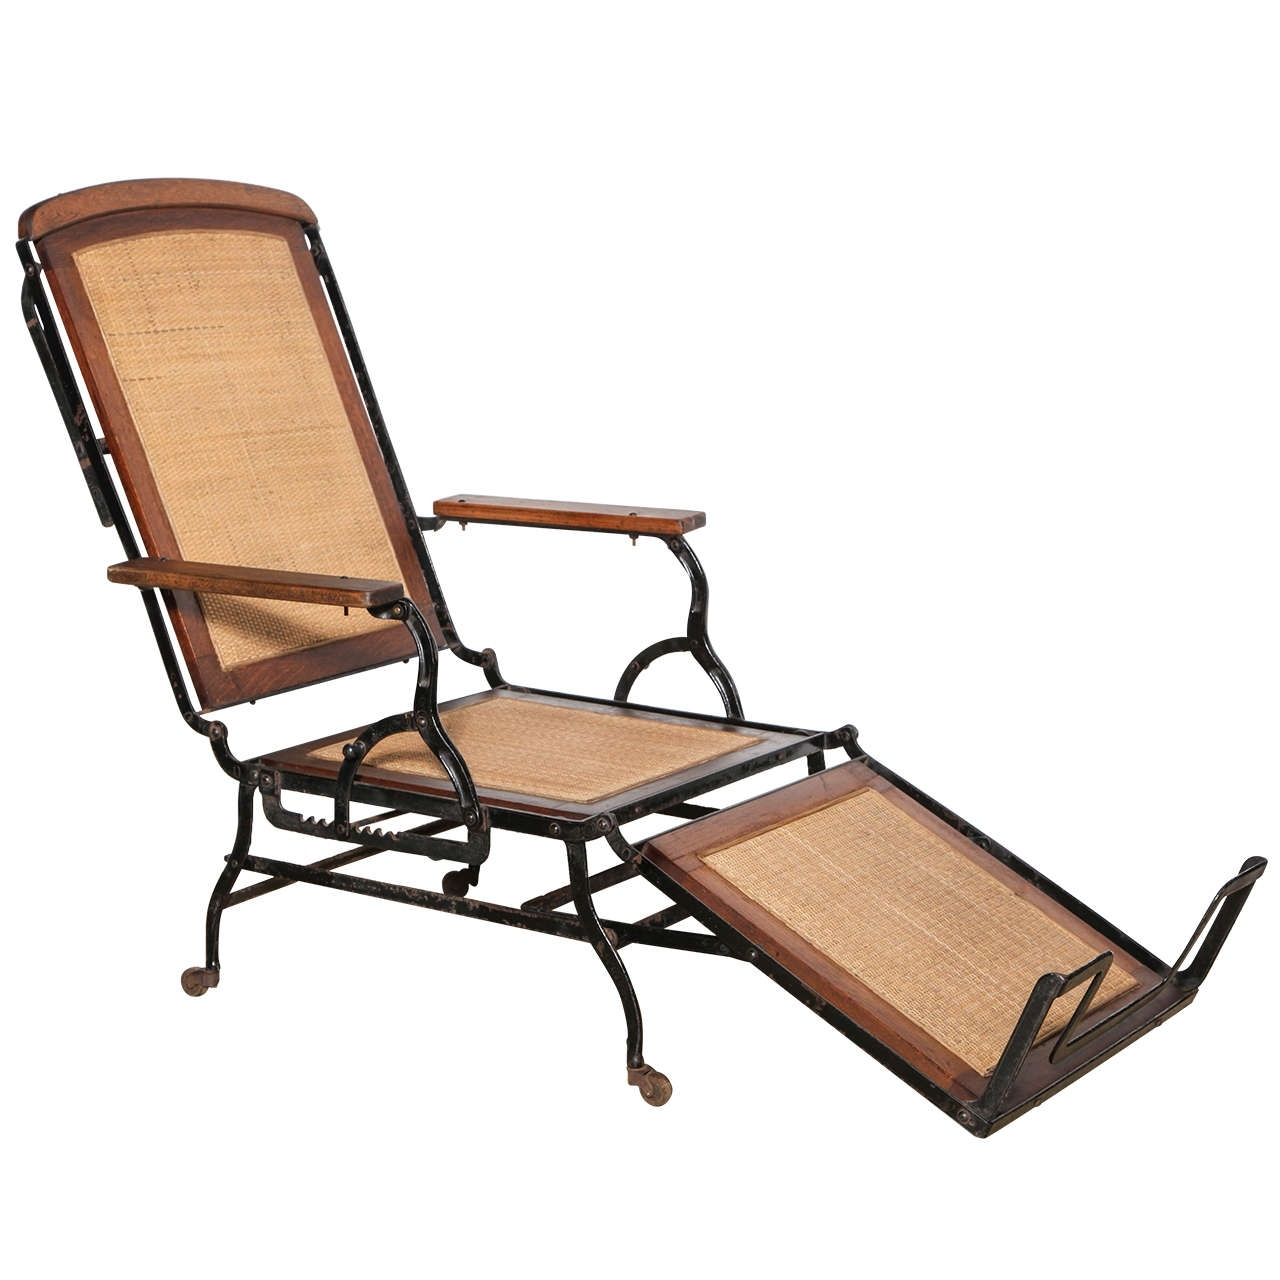 Popular Outdoor Chaise Lounge Chairs Under $200 In Cast Iron Chaise Lounge – Chiefkessler (View 10 of 15)